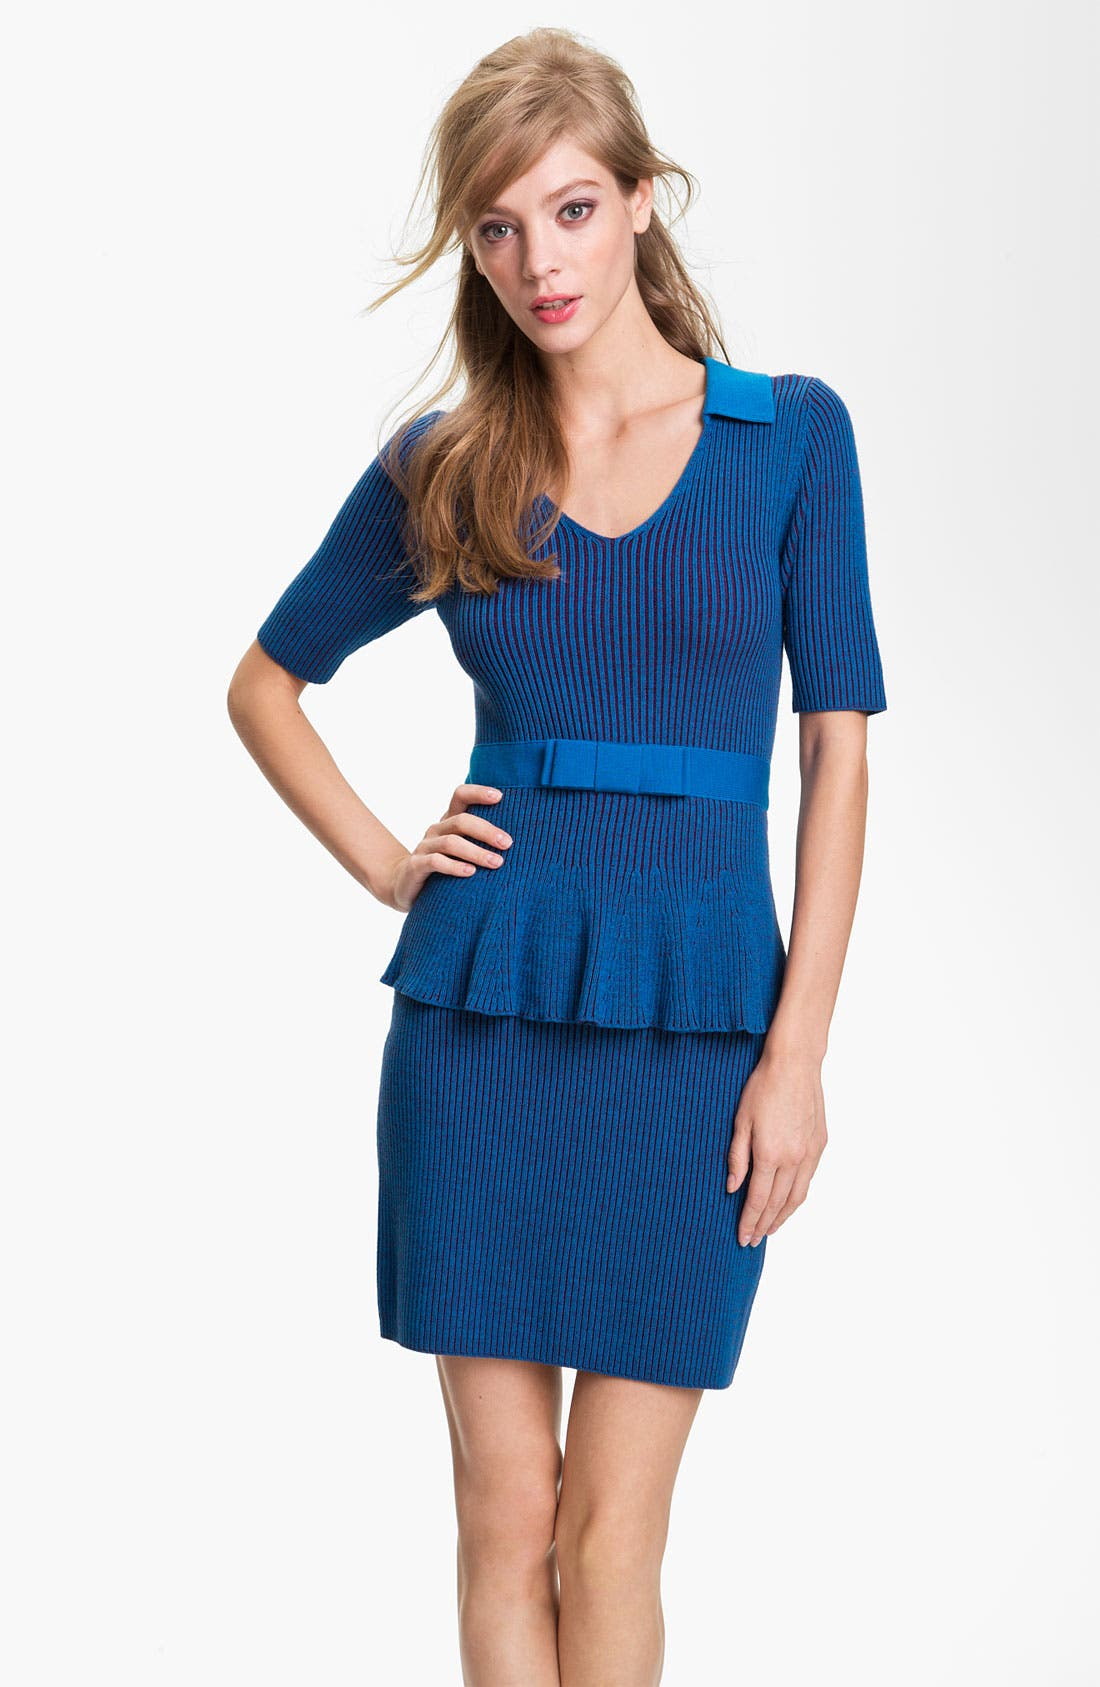 Alternate Image 1 Selected - Nanette Lepore 'The Empress' Merino Wool Sheath Dress (Online Exclusive)